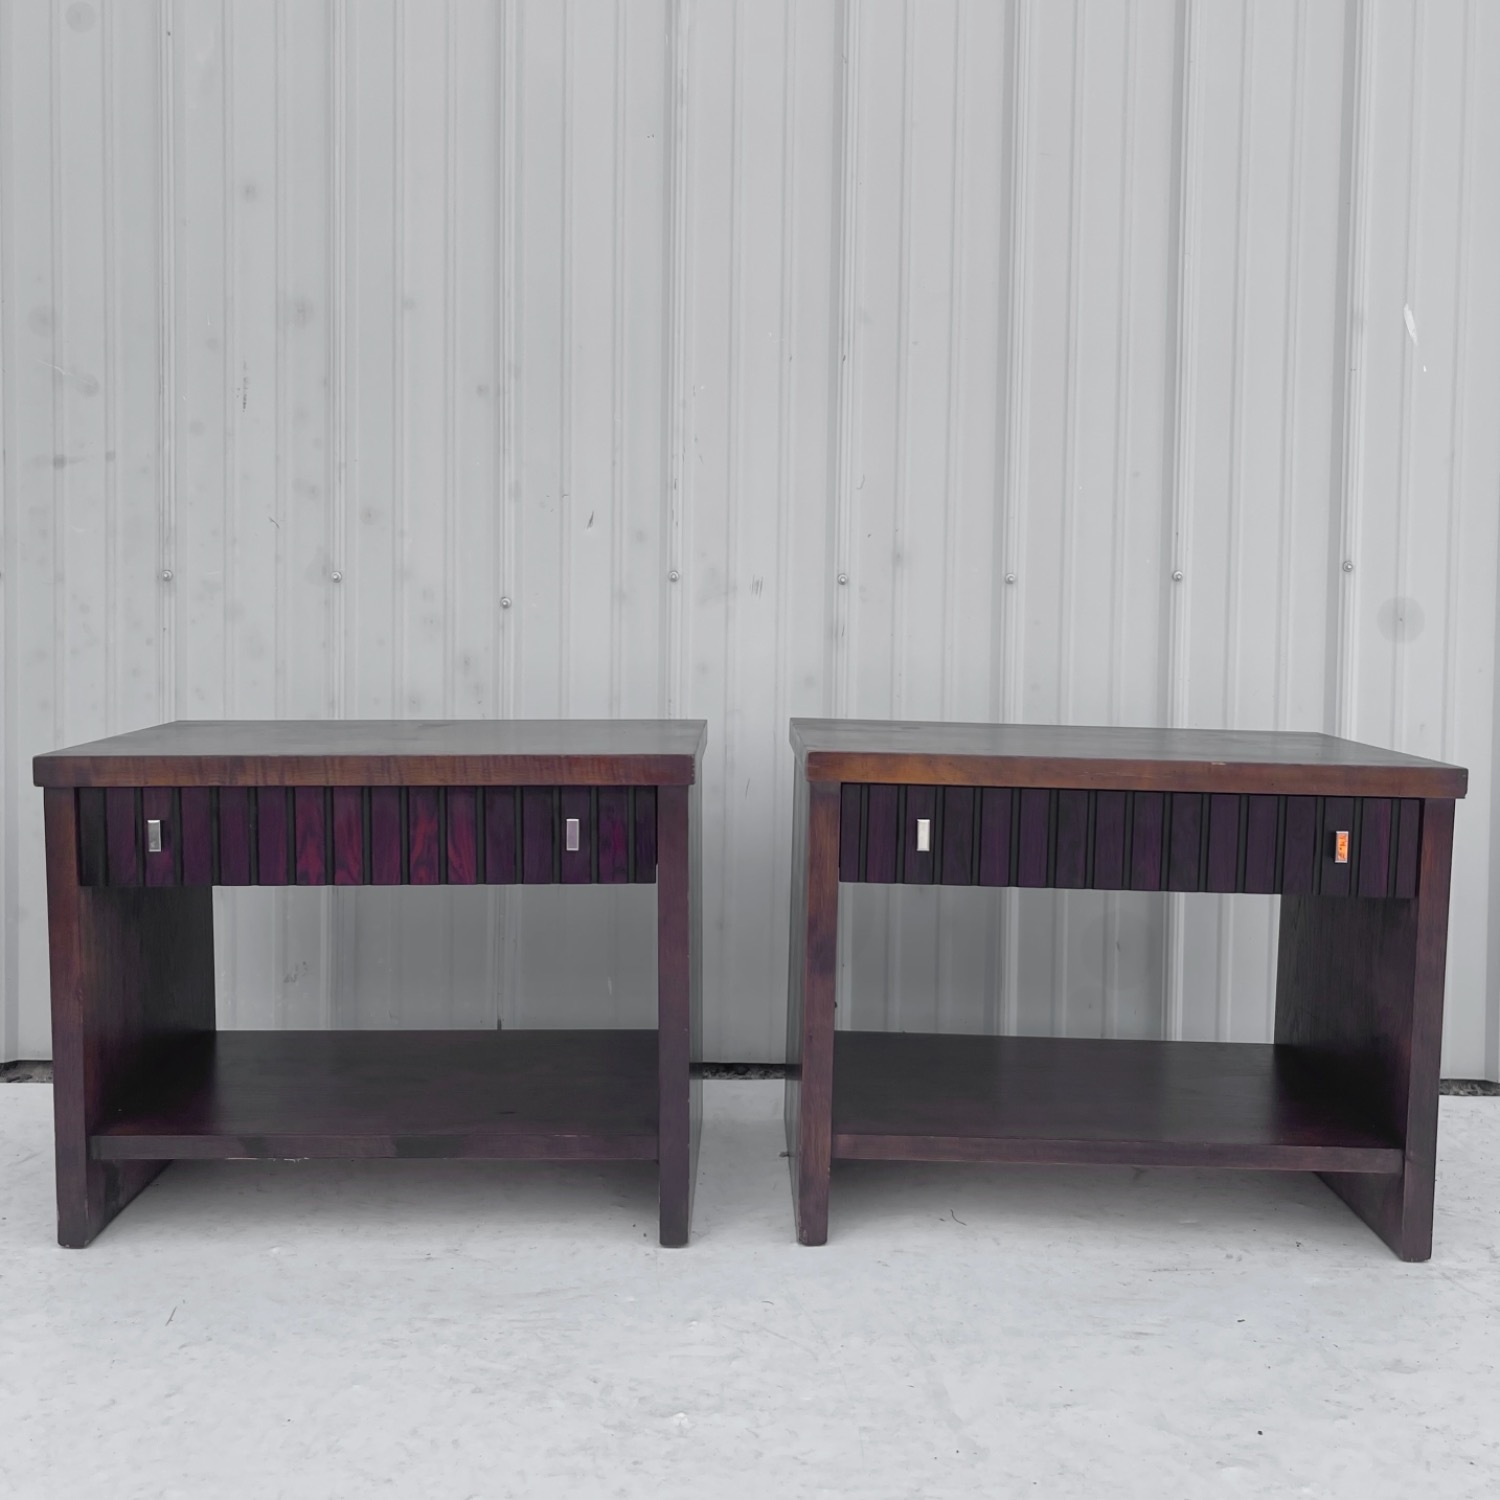 Mid-Century Nightstands by Lane Furniture - image-18